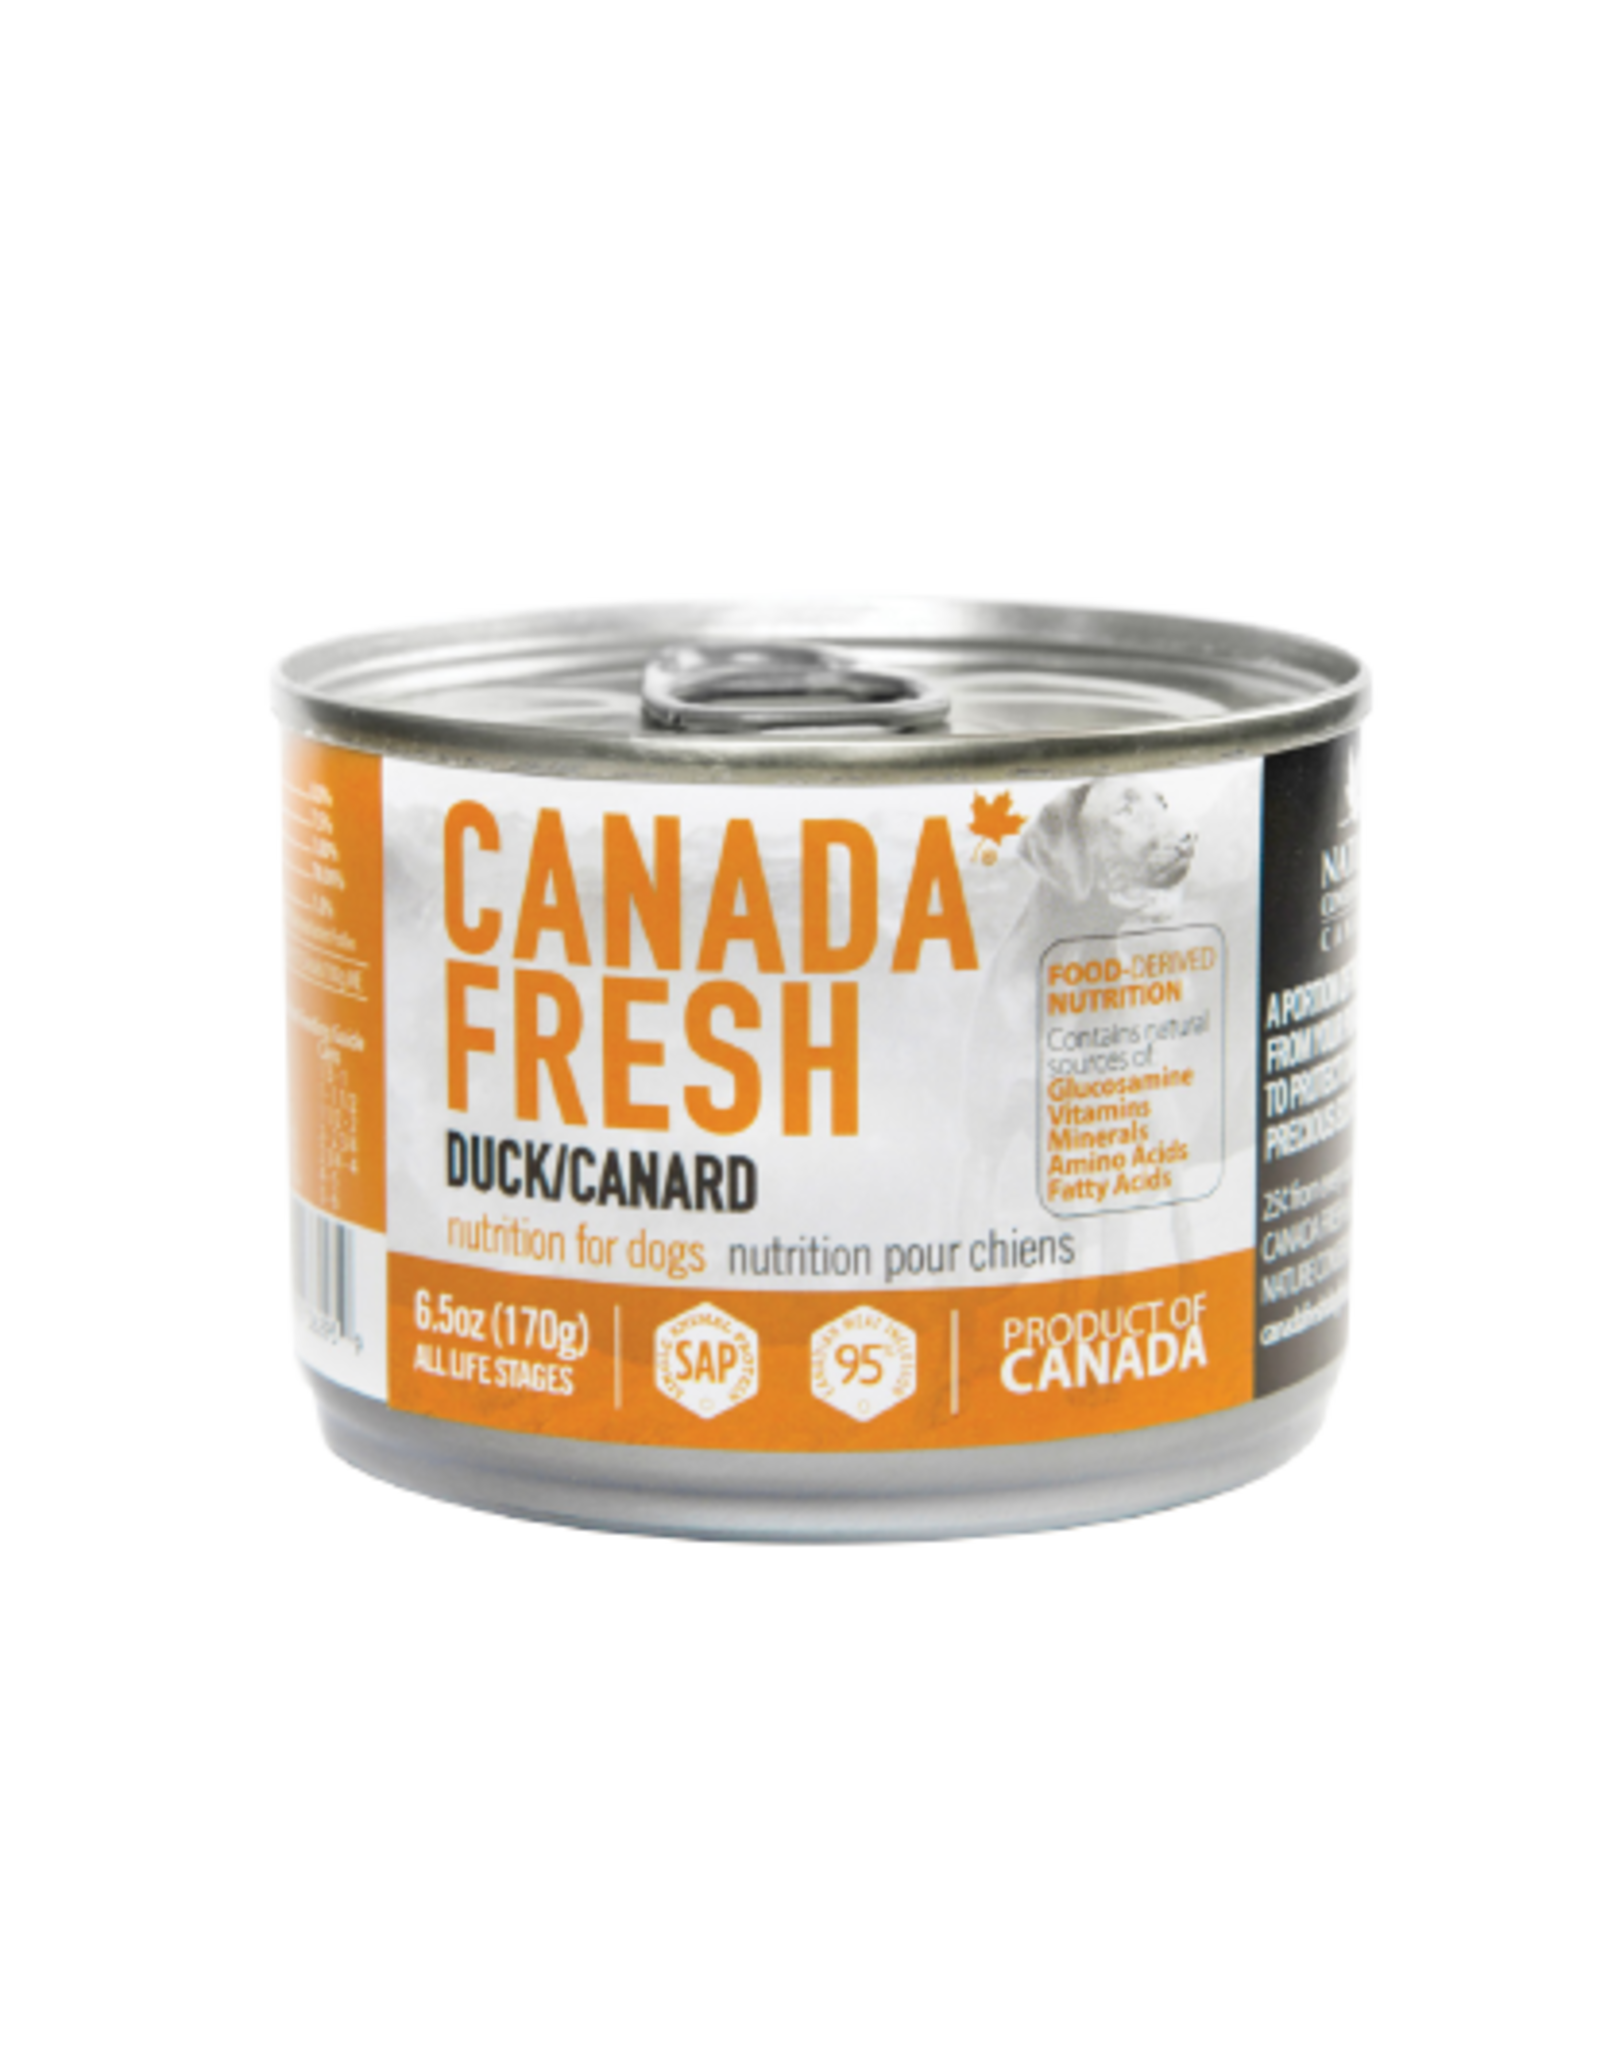 PETKIND CanadaFresh DOG Duck 6.5oz